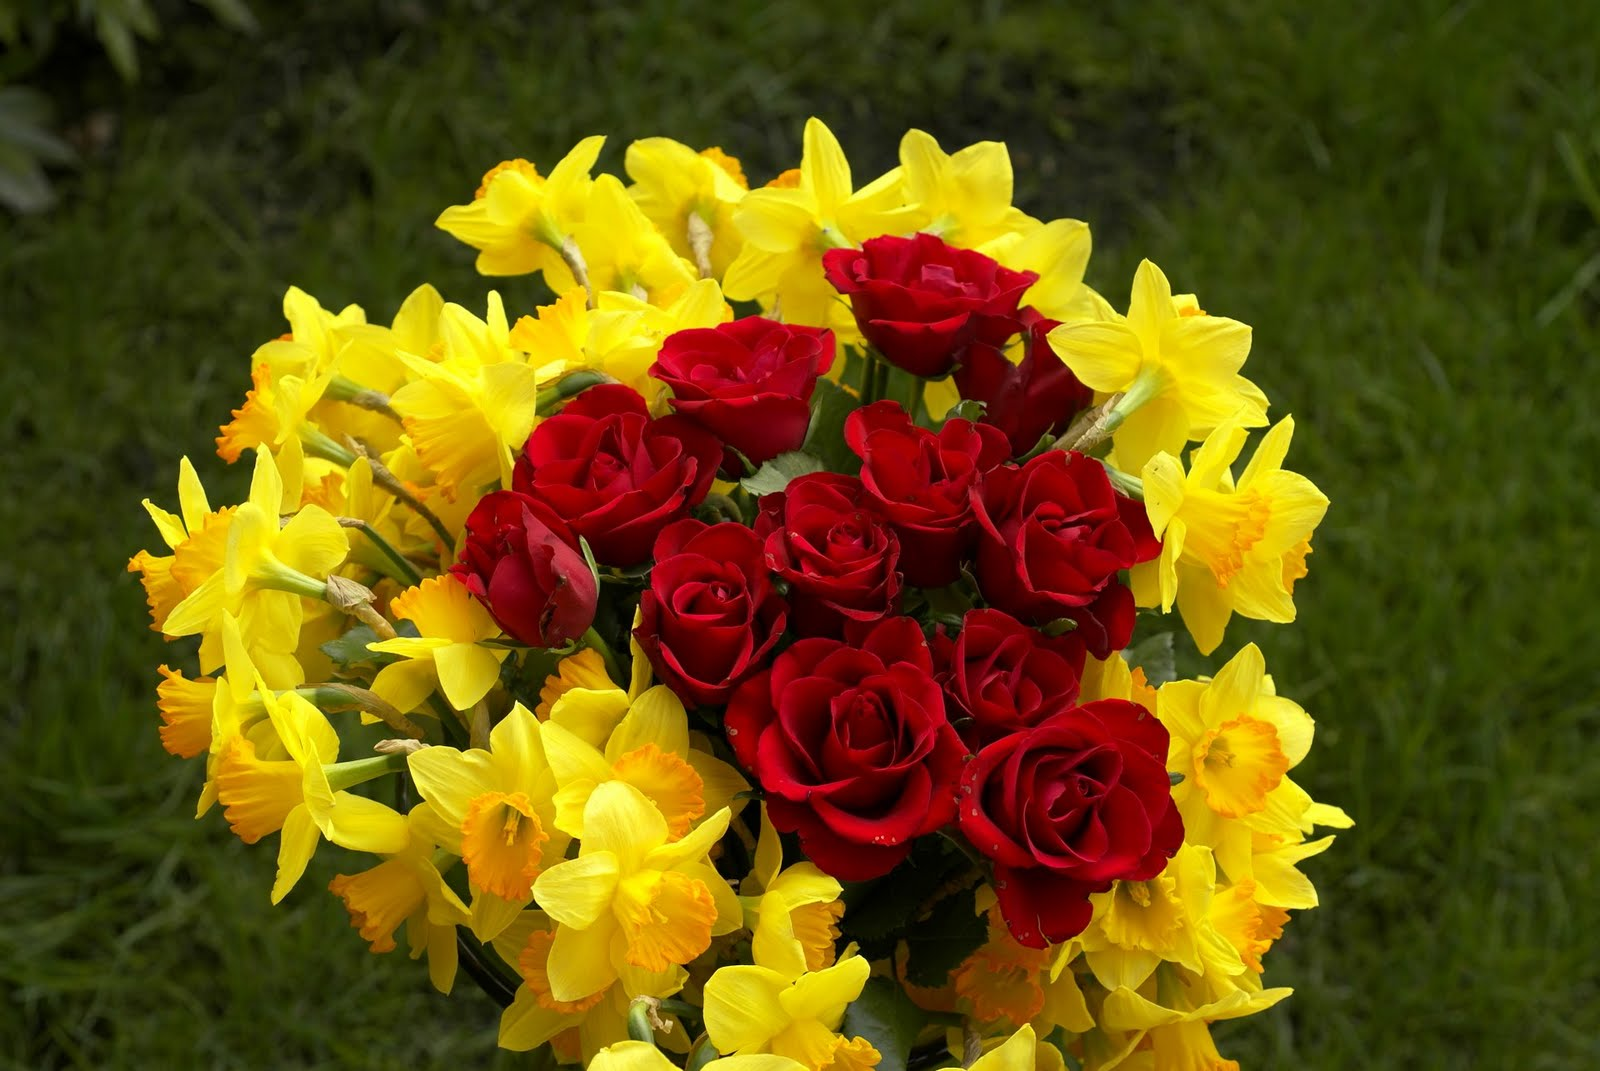 Flowers, Rose Flowers,ooty Rose Flowers, Indian Rose Flowers, Flowers